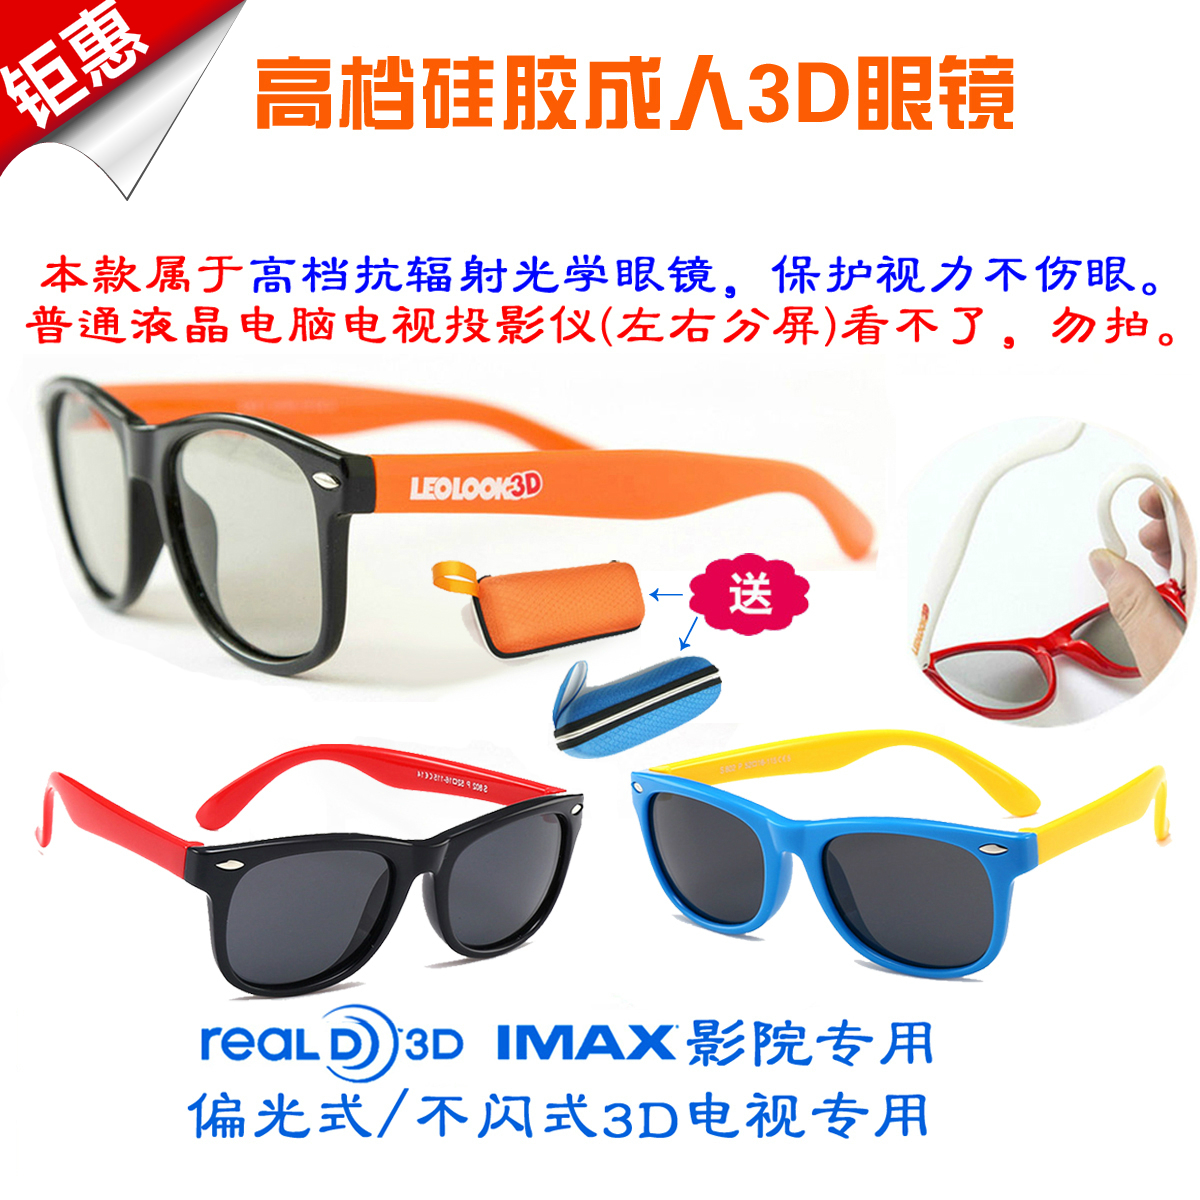 Couple super soft 3D glasses cinema special circular polarized non flashing real 3D glasses TV universal